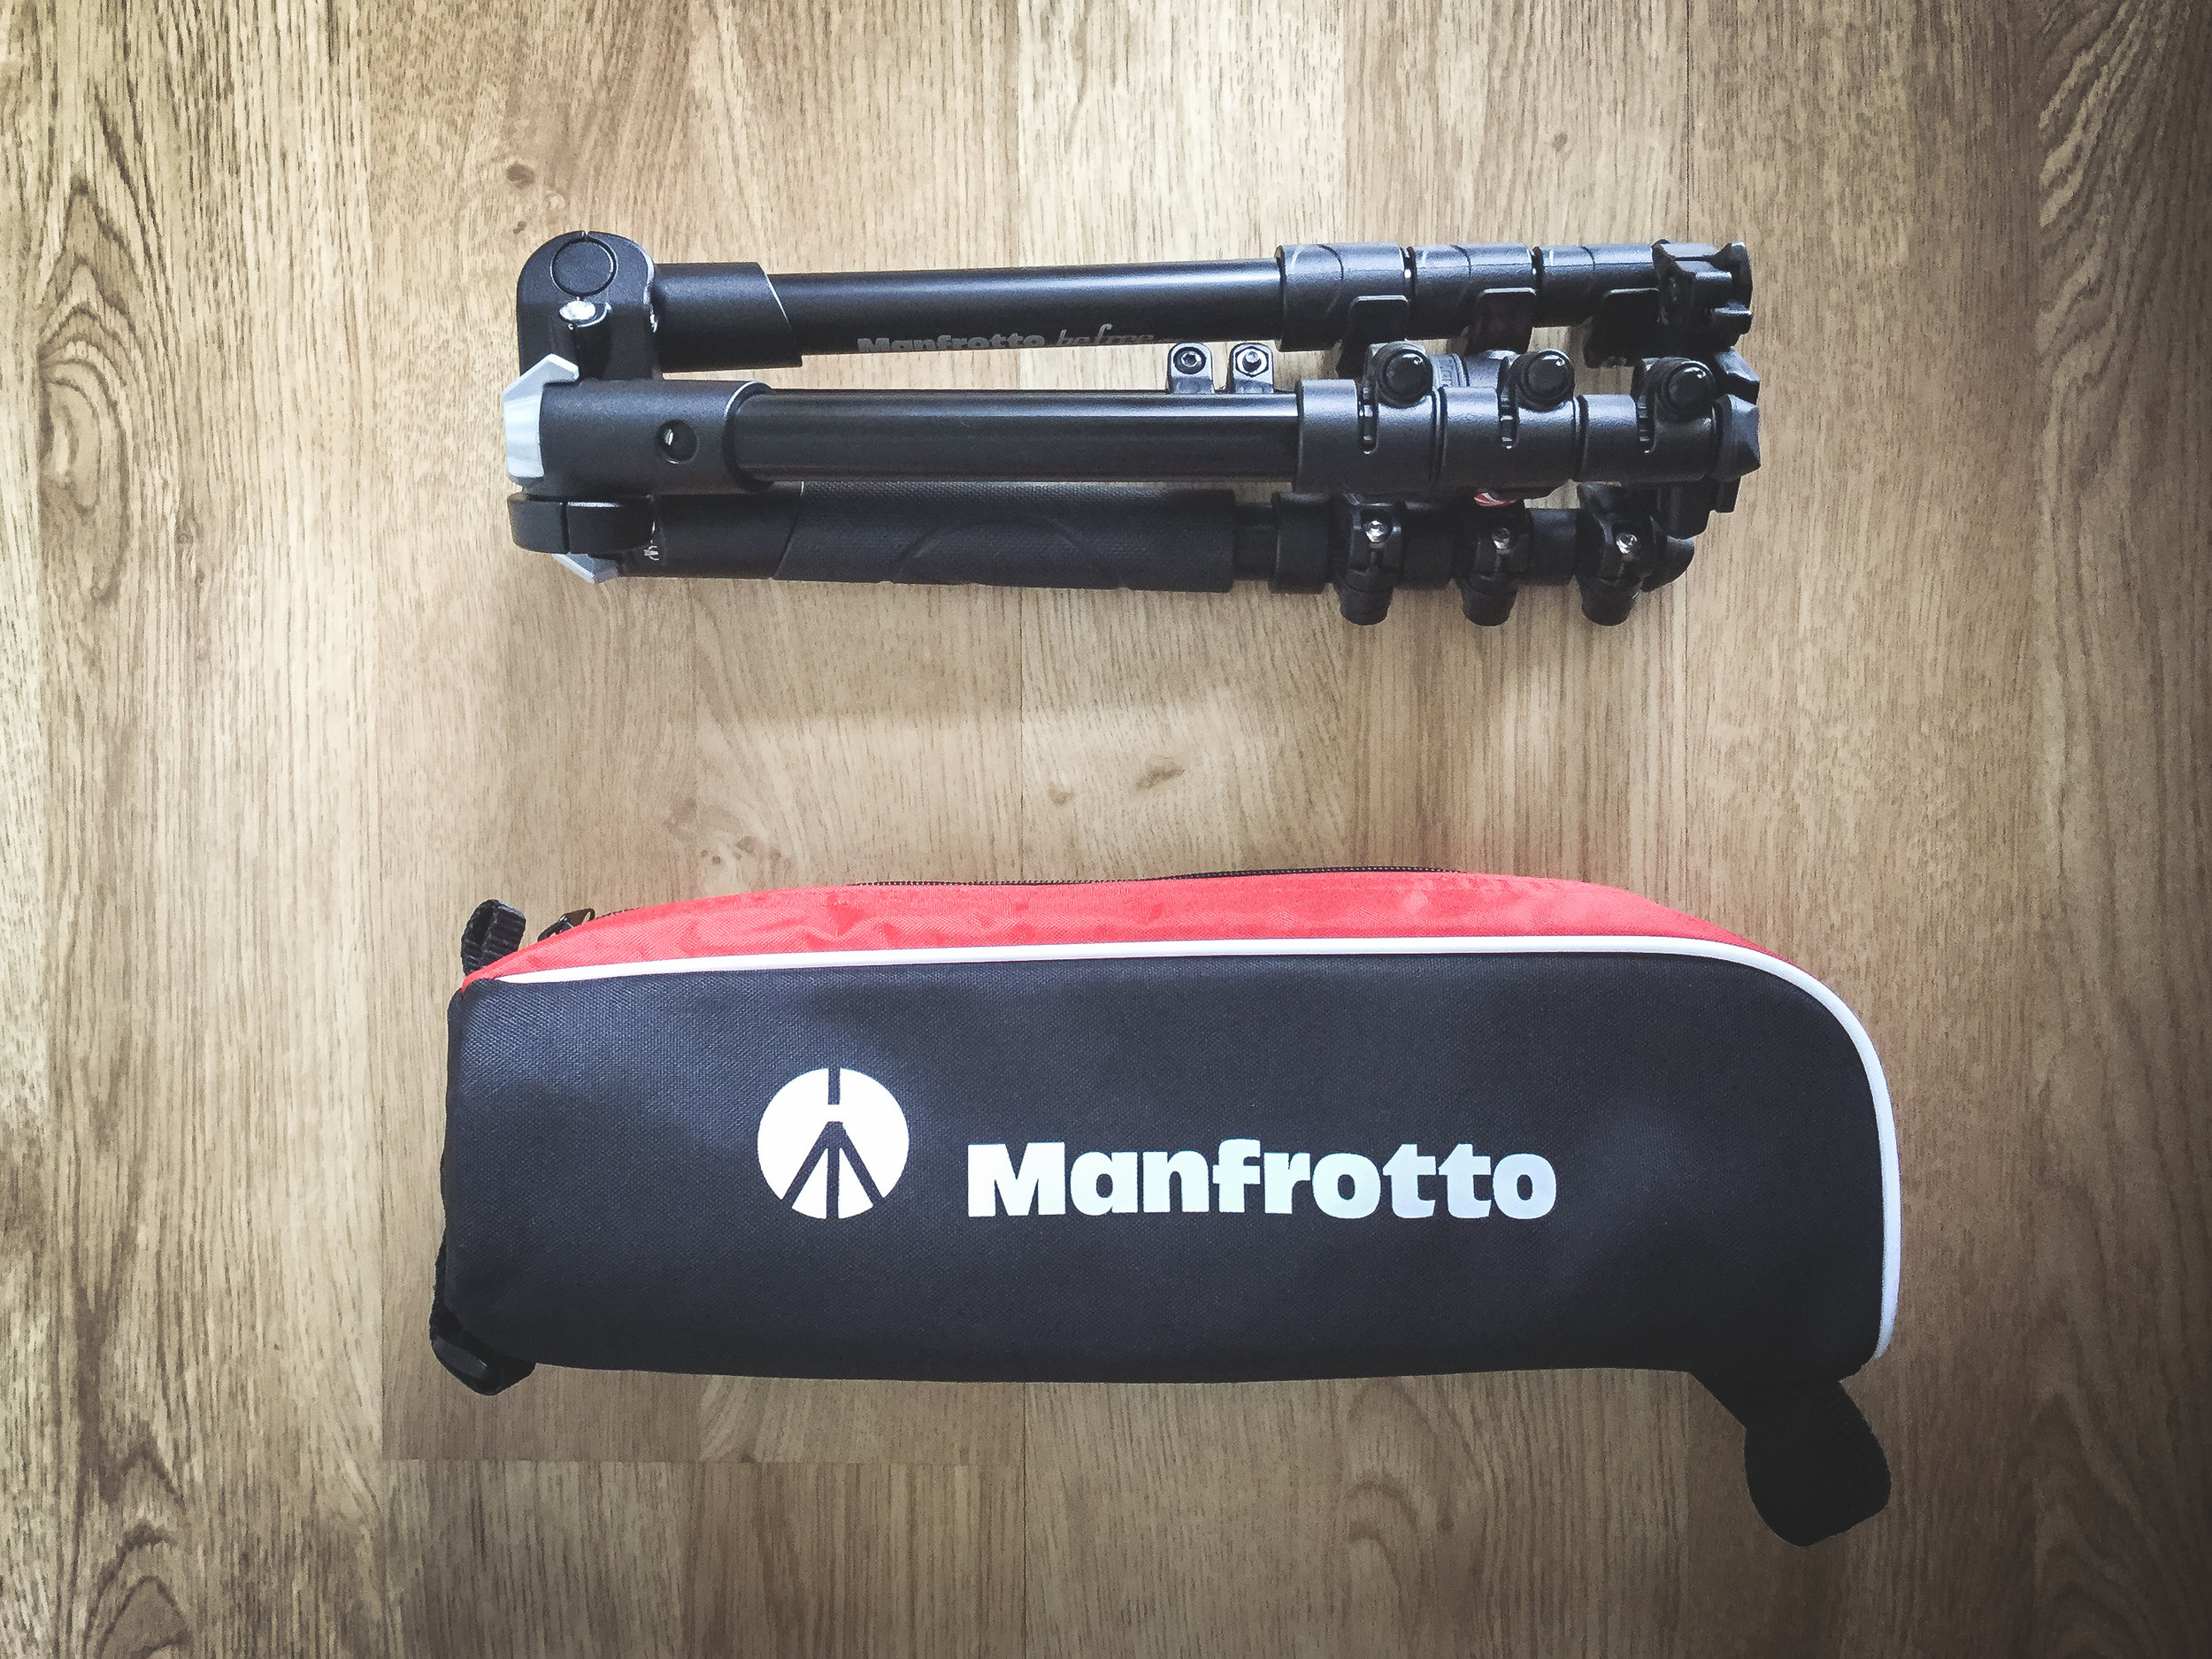 Manfrotto BeFree One - This is a pretty new item in my bag. Over the years I had many occasion when I wished I had brought a good quality tripod. This one easily fits in the side of my backpack. Also doubles as a light-stand and comes with a handy little carrier bag.